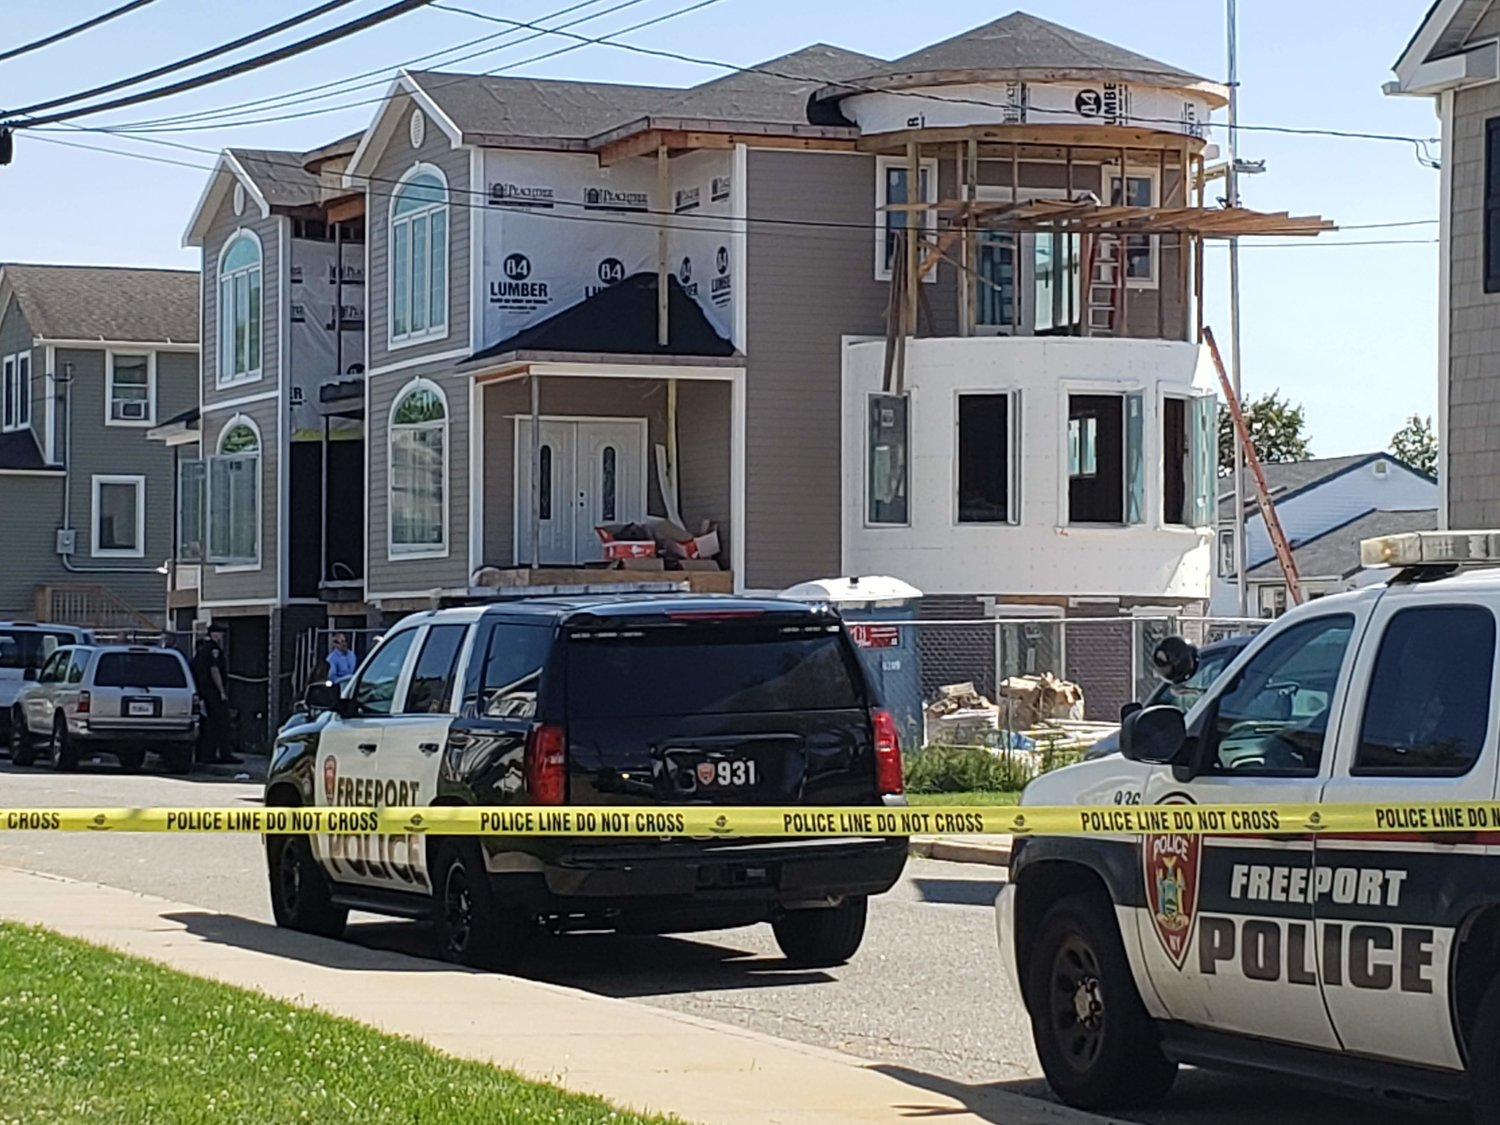 A construction accident on July 1 on South Bayview Avenue in Freeport caused the death of a 17-year-old construction worker and left one man injured.